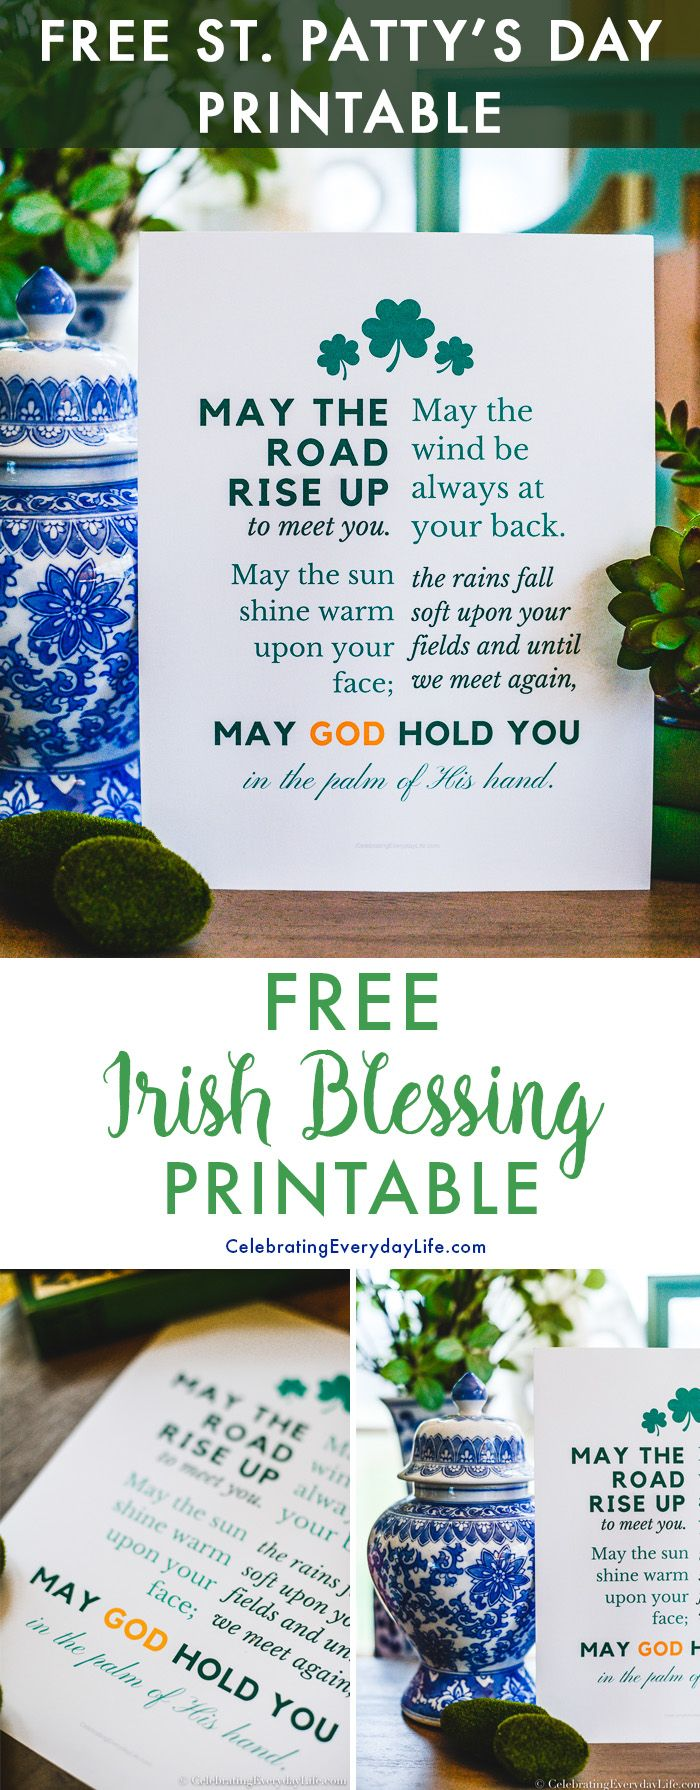 Spruce up your seasonal home decor with this Free St. Patrick's Day Printable. This beloved Irish blessing is a perfect way to decorate for St. Paddy's Day without breaking the bank. Click here to download your free St. Patty's Day Printable art! #stpaddysday #stpatricksday #freeprintable #diydecor #printable #decoratingideas #budgetdecor via @jencarrollva